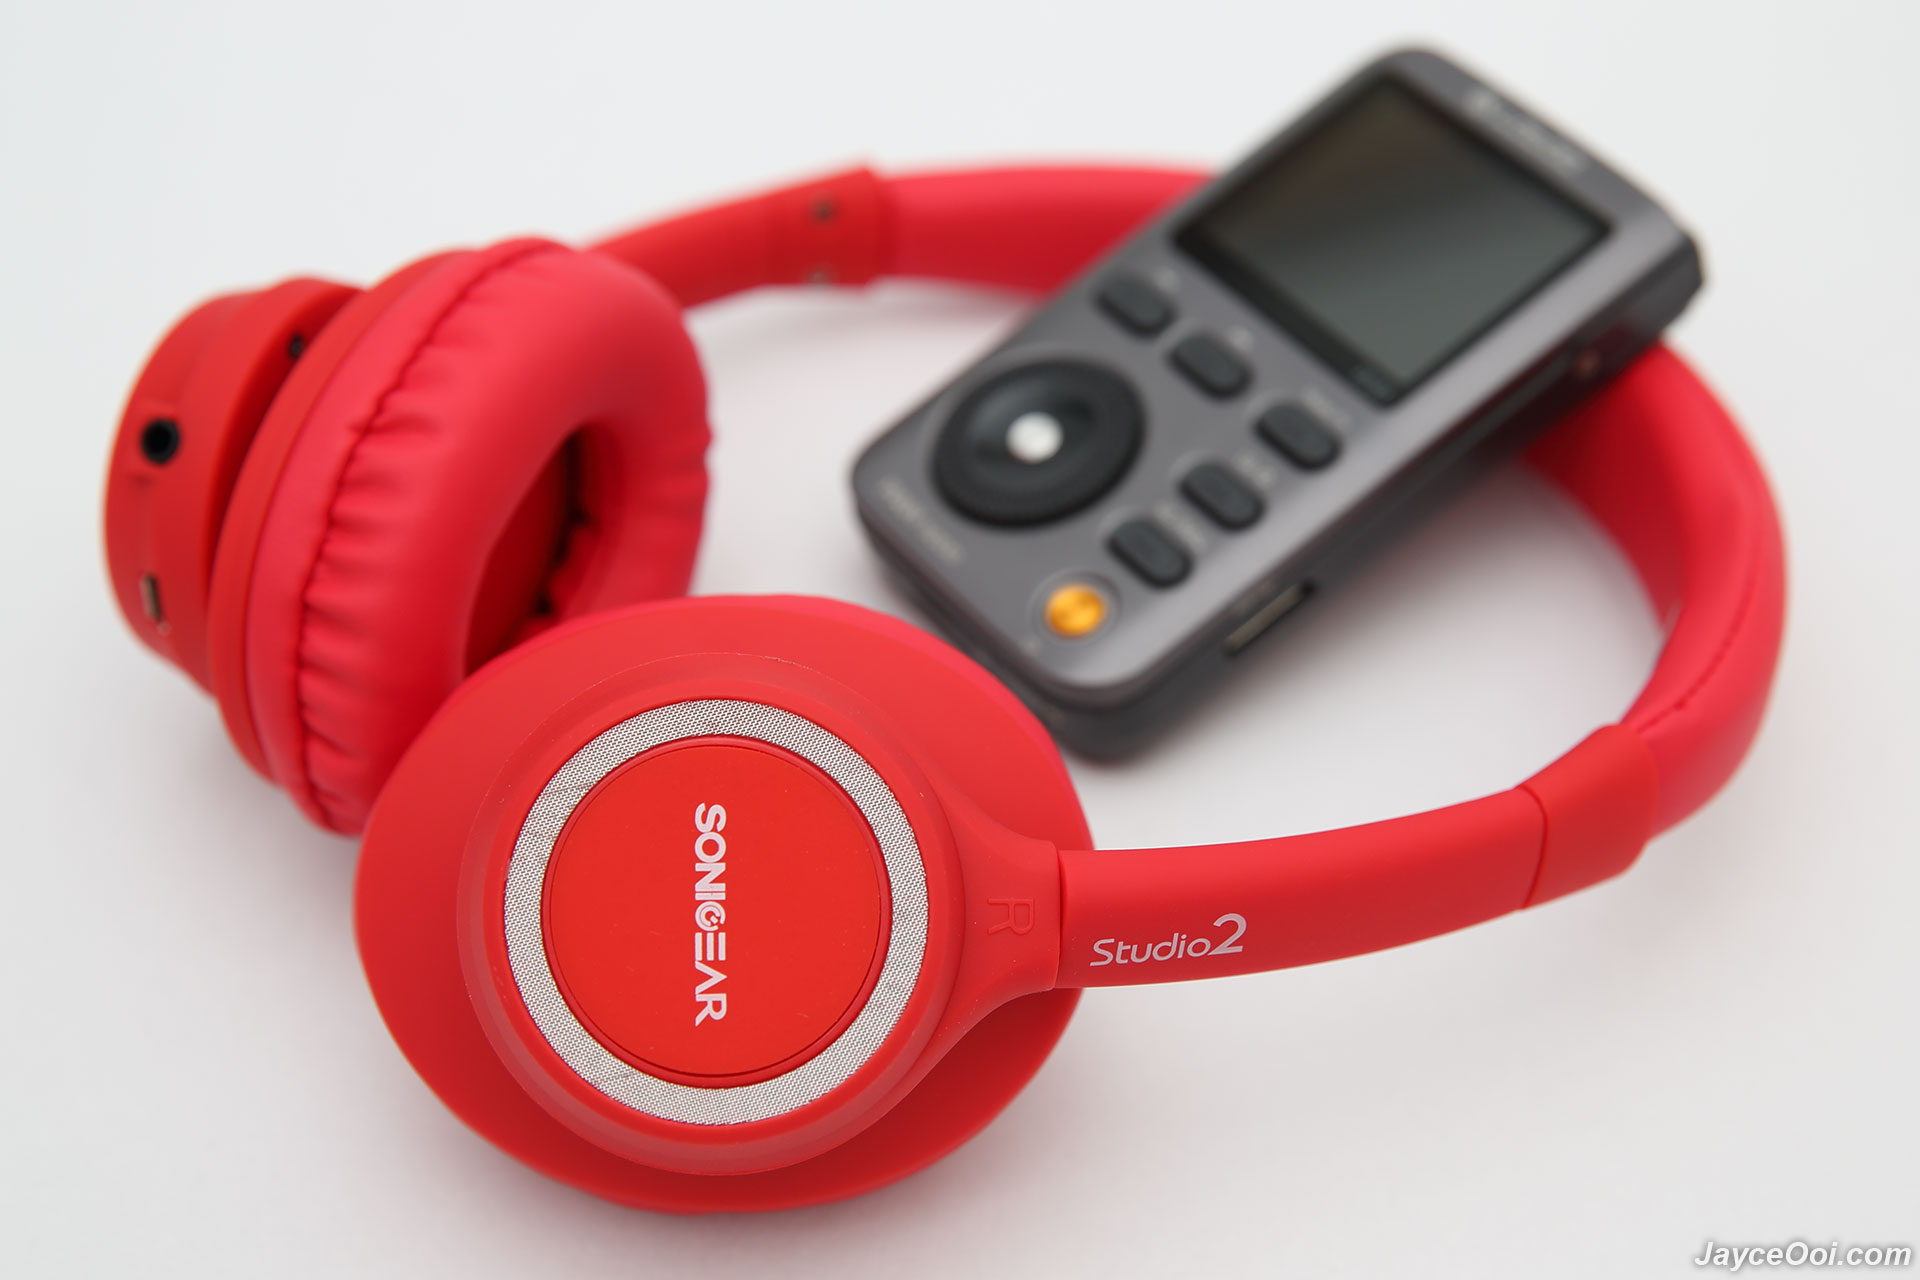 sonicgear studio 2 bluetooth headset review. Black Bedroom Furniture Sets. Home Design Ideas